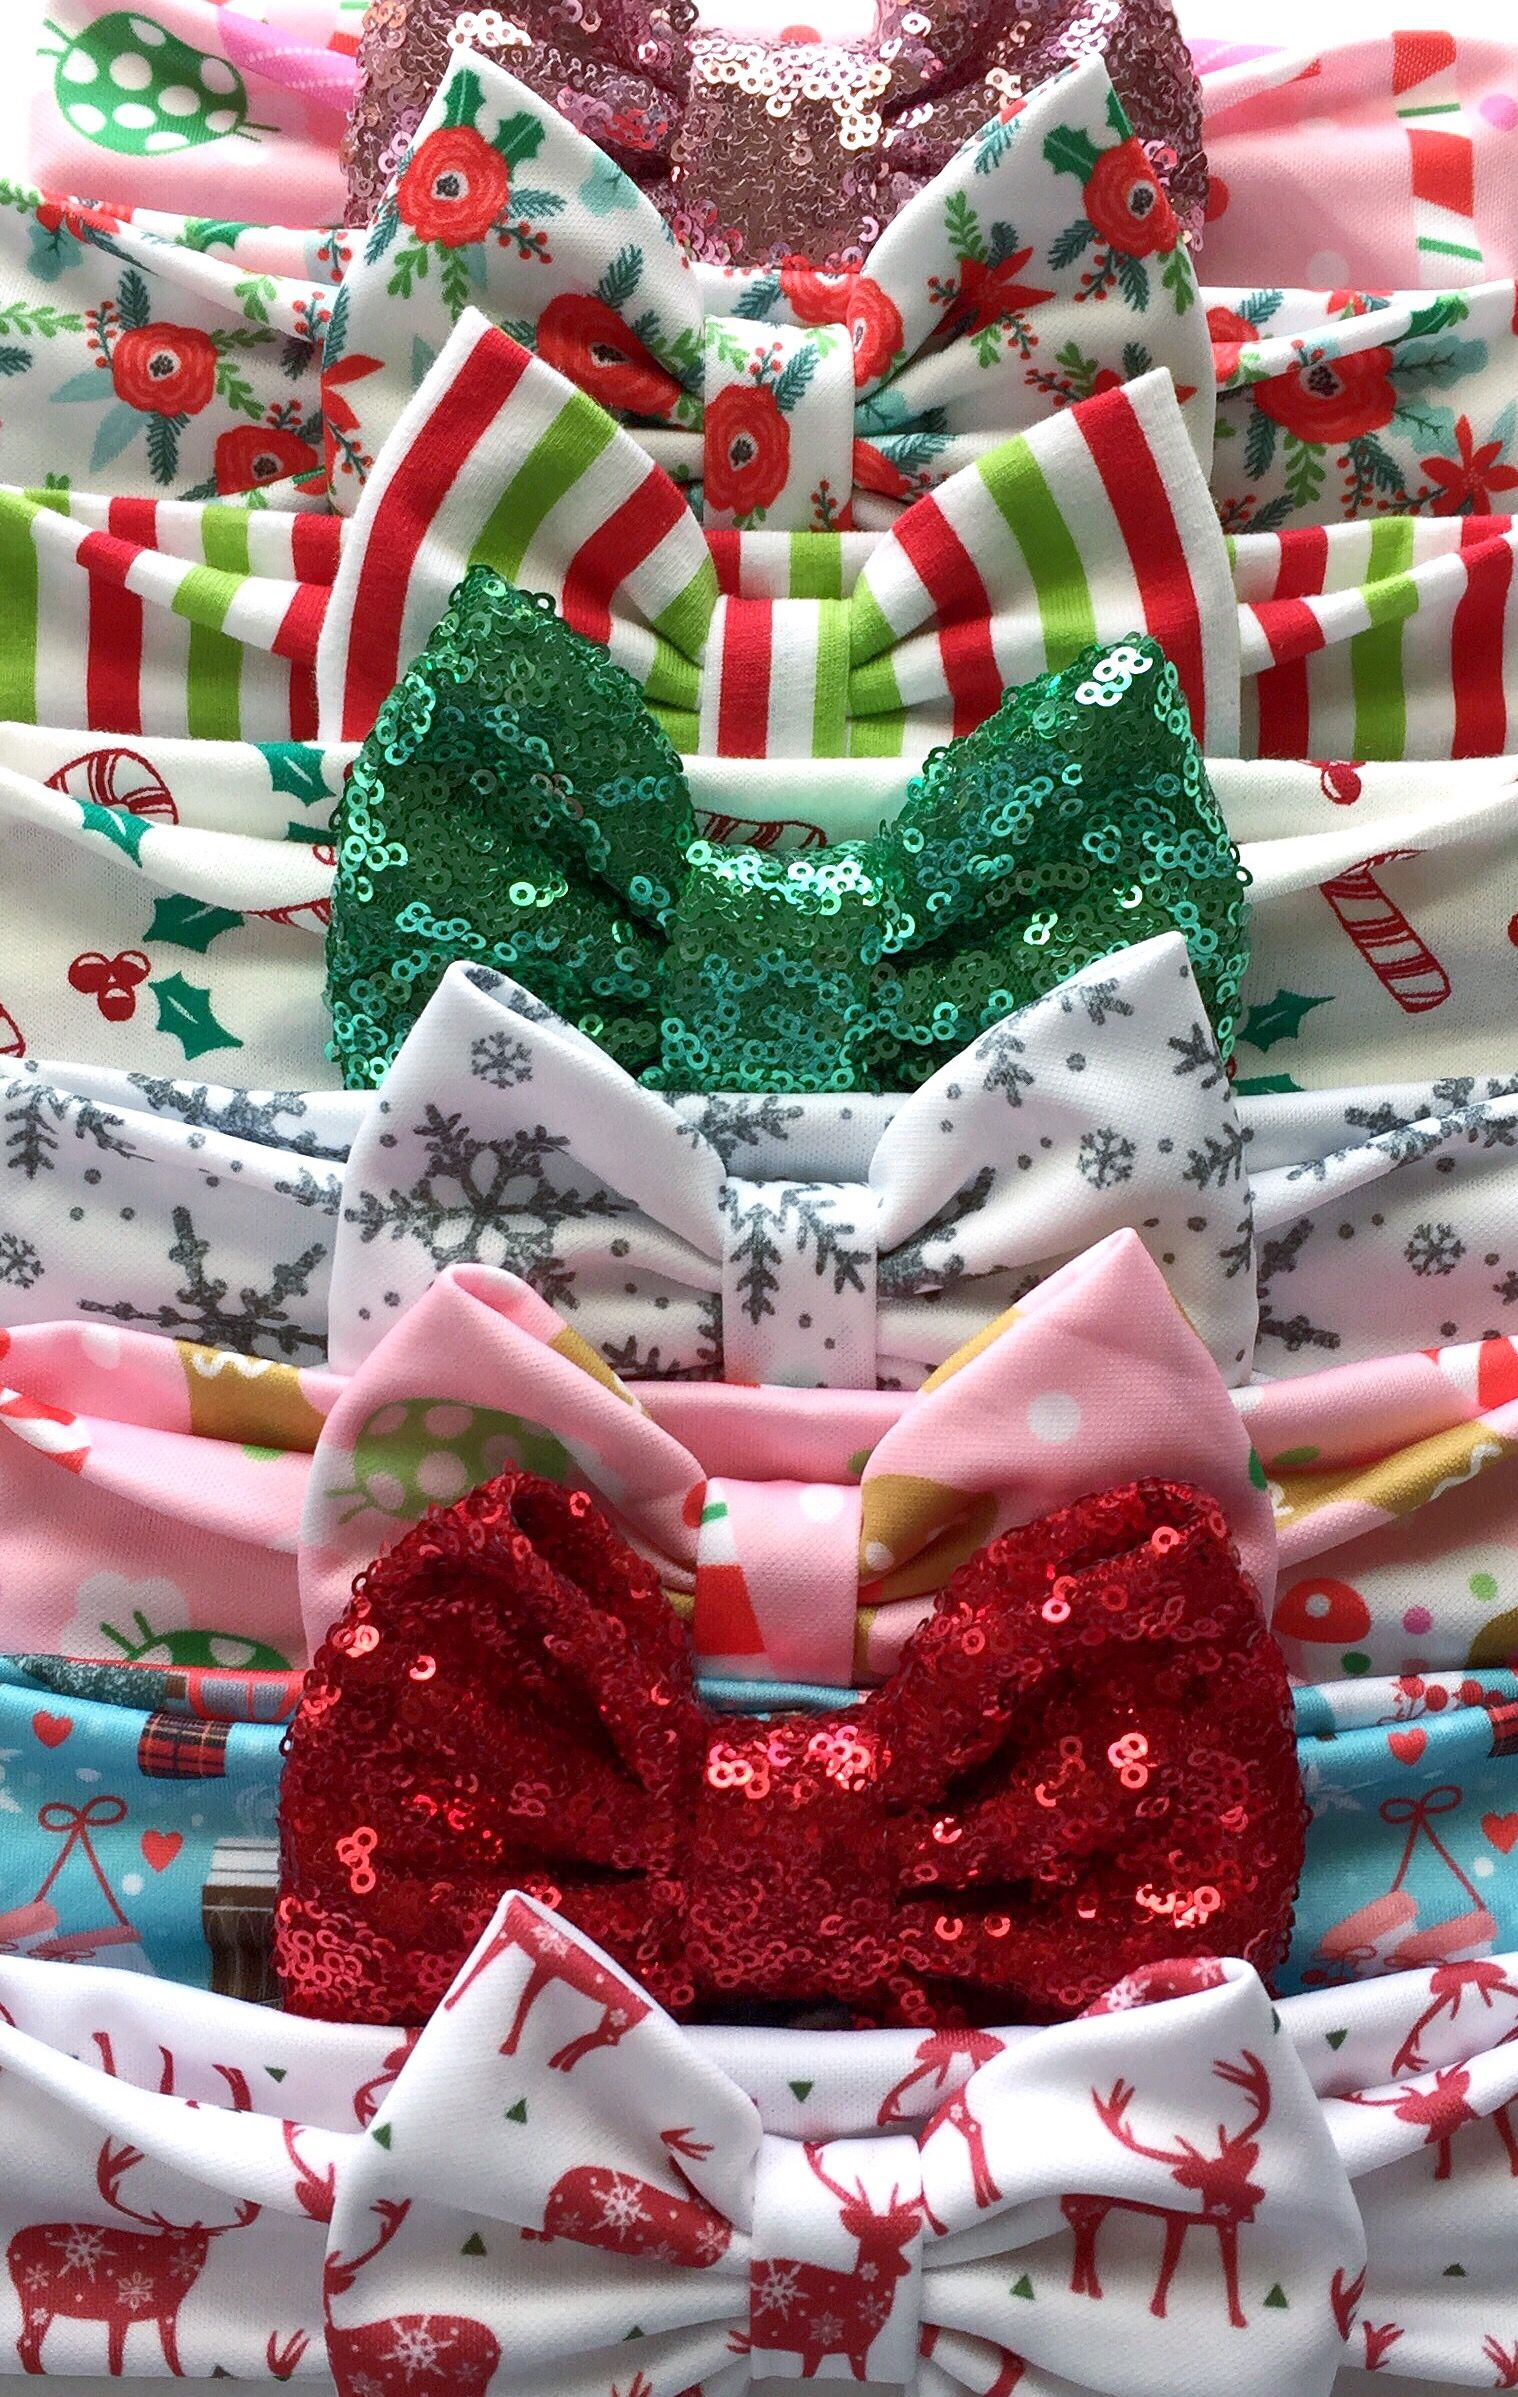 Shop the new holiday collection at www.sassybowco.com so many adorable holiday headbands and bows!